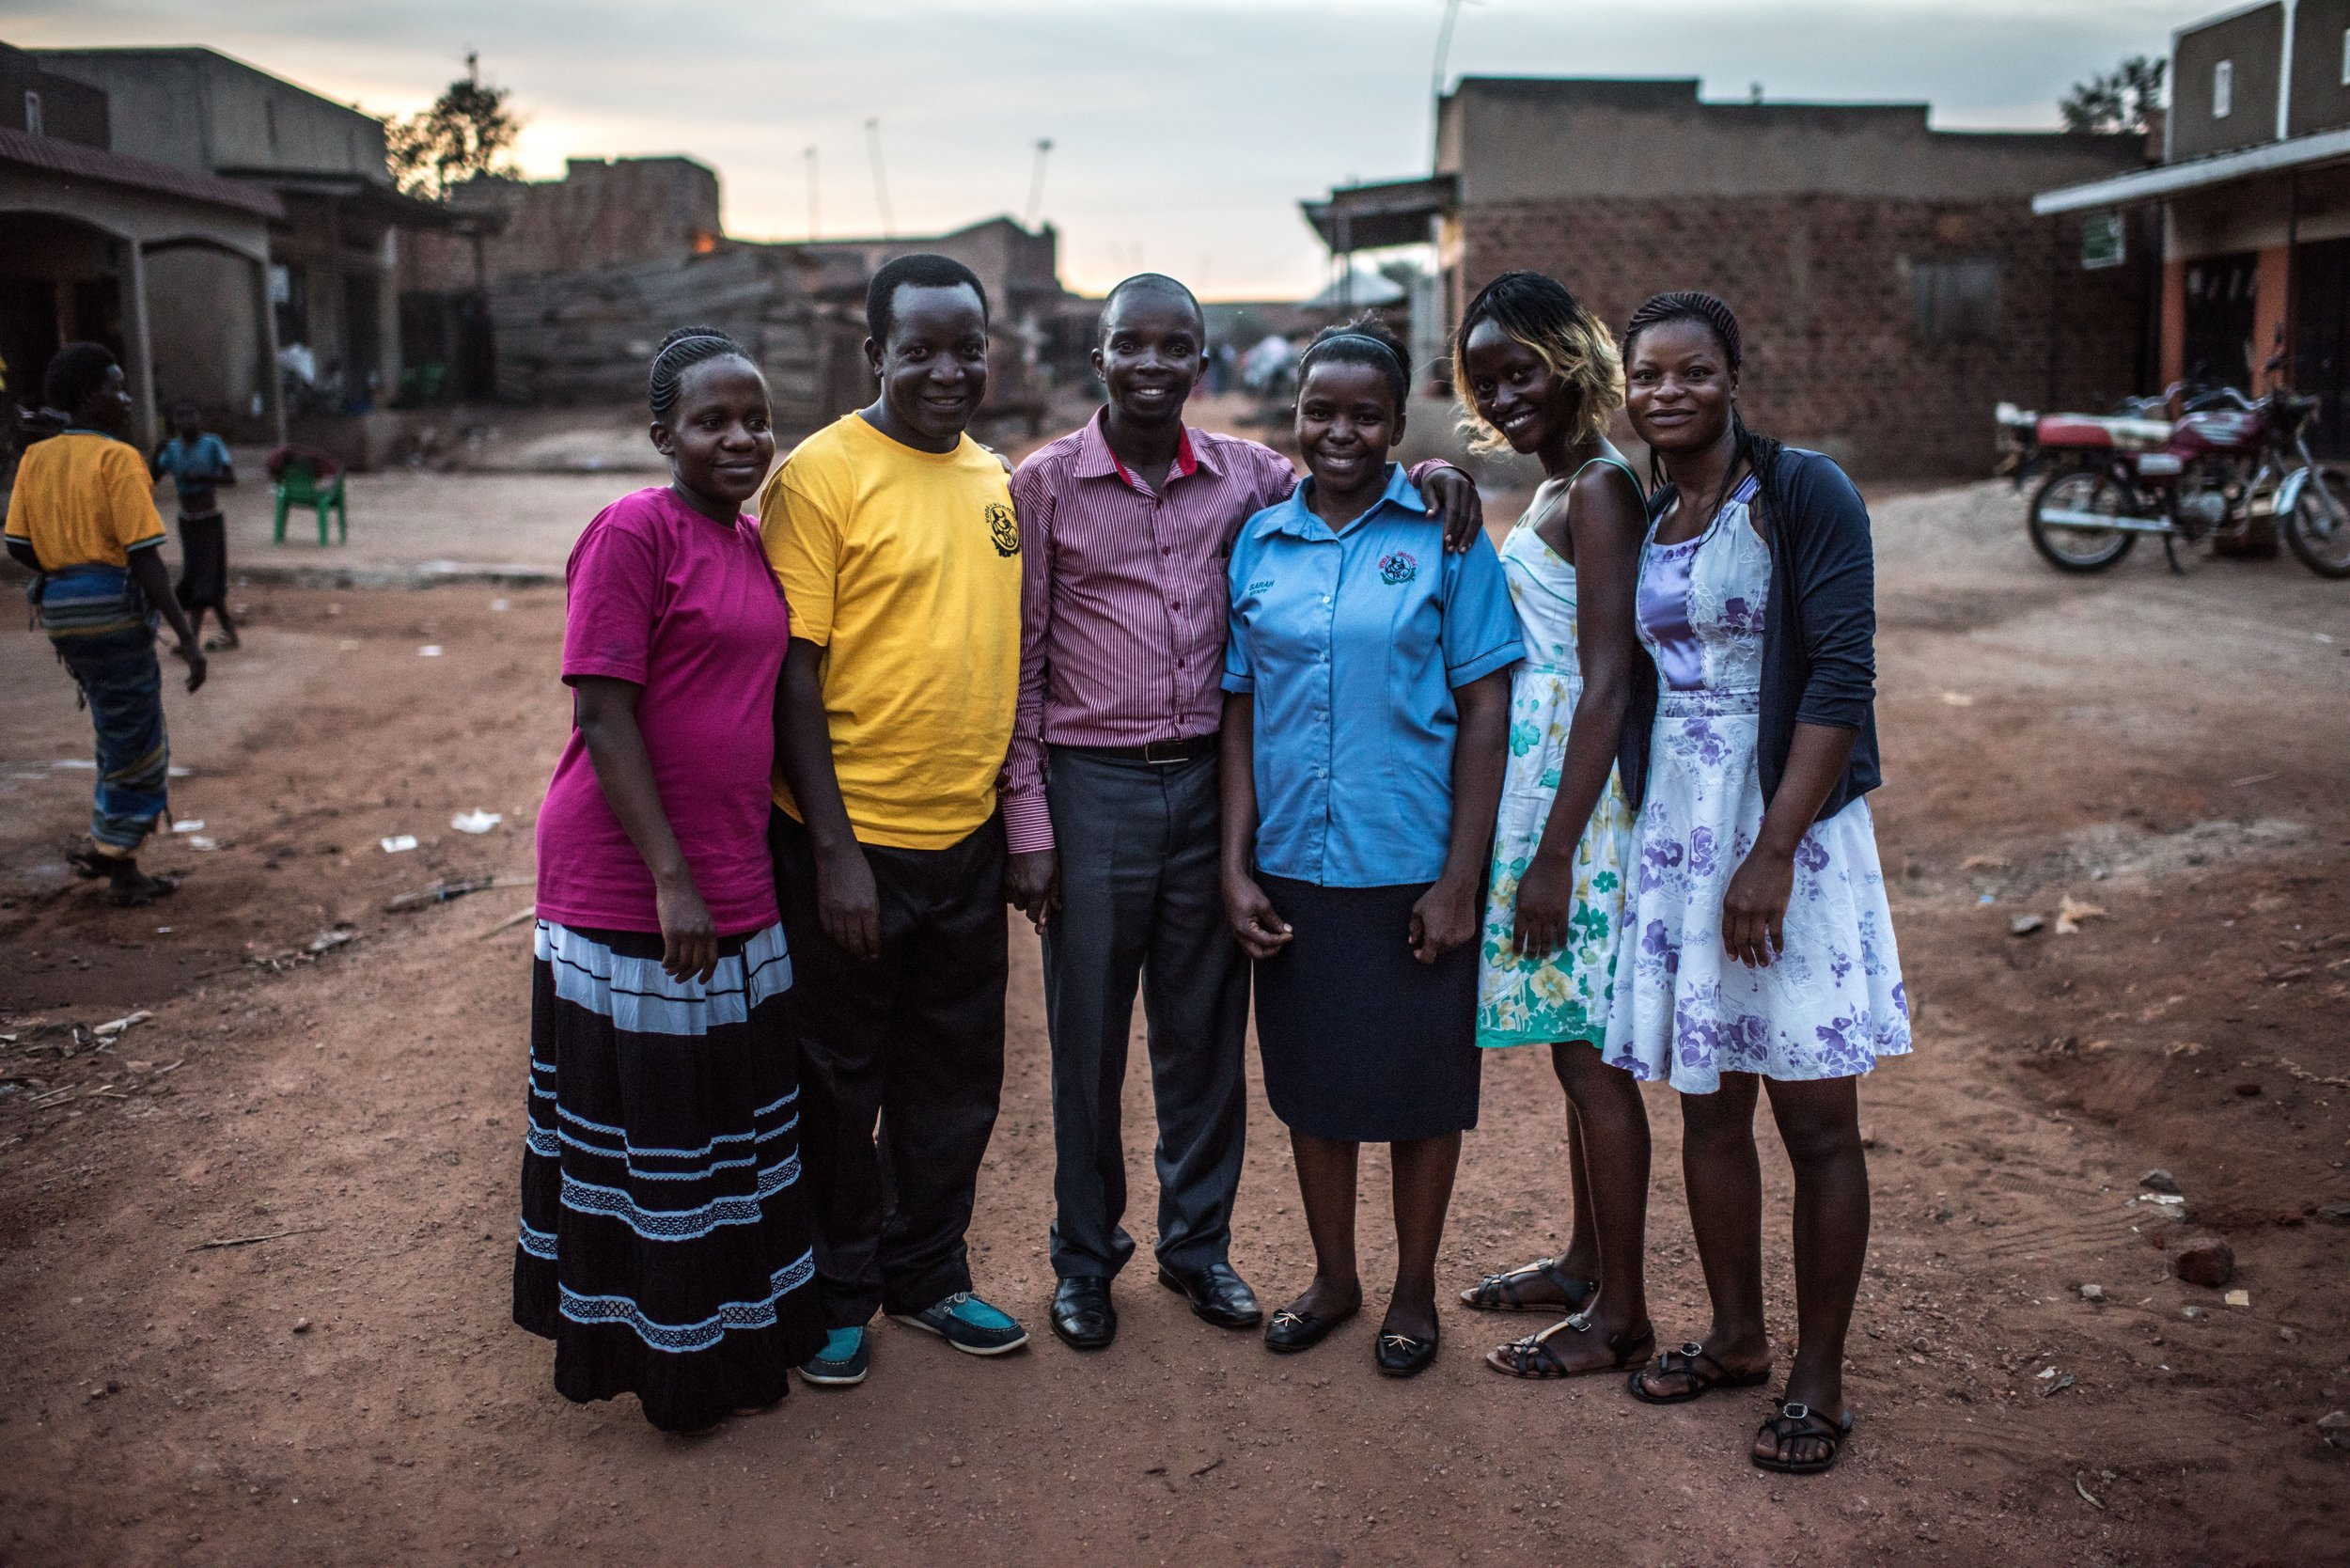 Volunteers for Development Association Uganda (VODA) - VODA is a small community based organisation from Mukono County, two hours from the Ugandan capital, Kampala. Their SAAF project started in 2014 to change attitudes about abortion among schools, communities and health centres. Read the stories of those who have been affected by the project here.